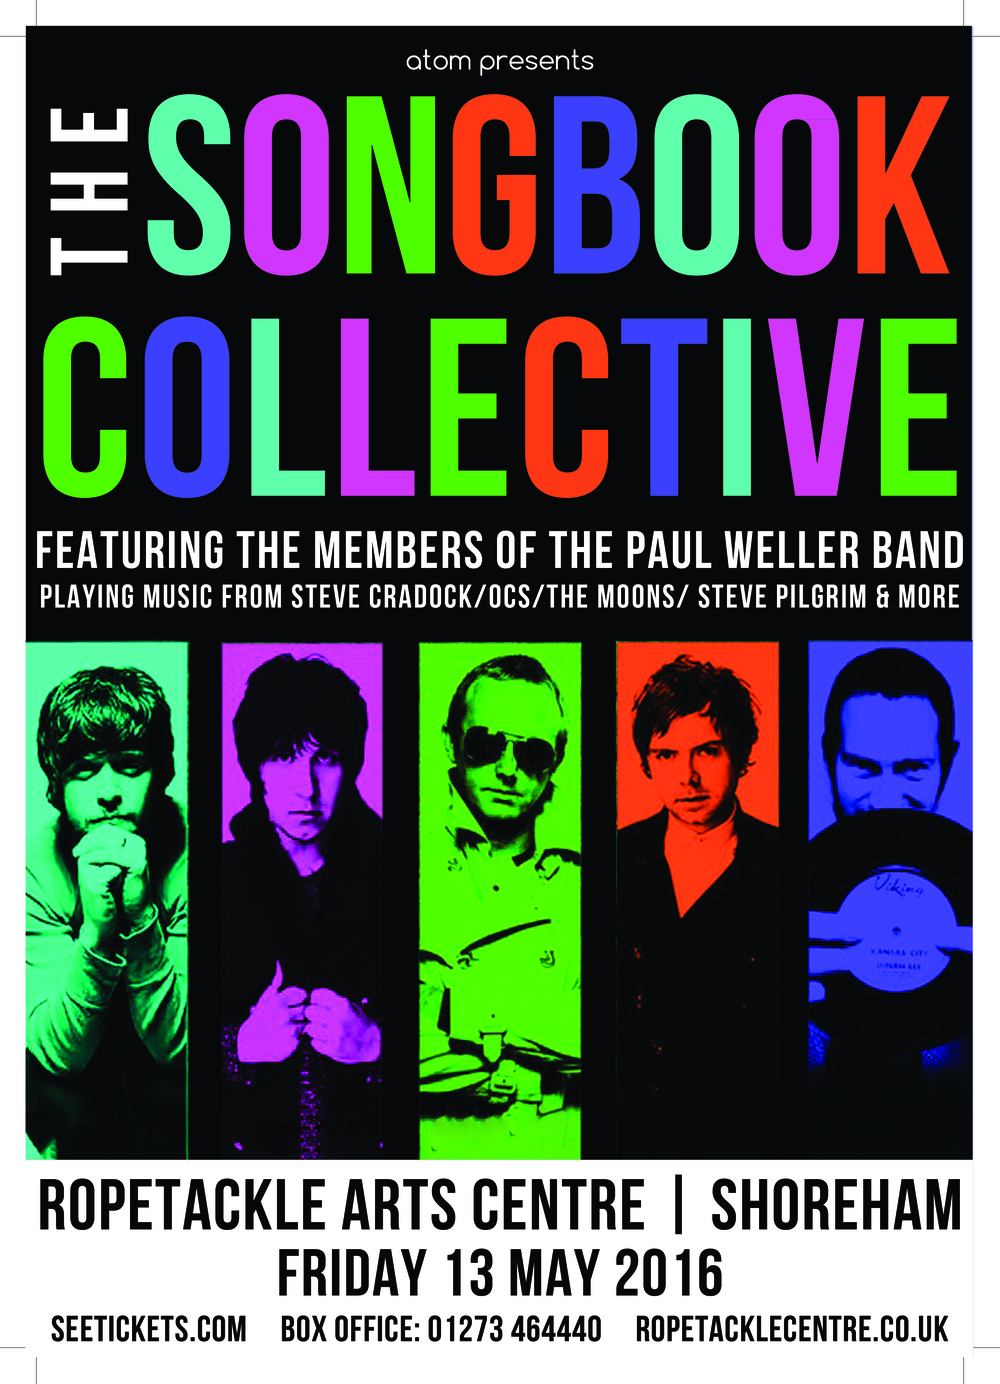 The Songbook Collective